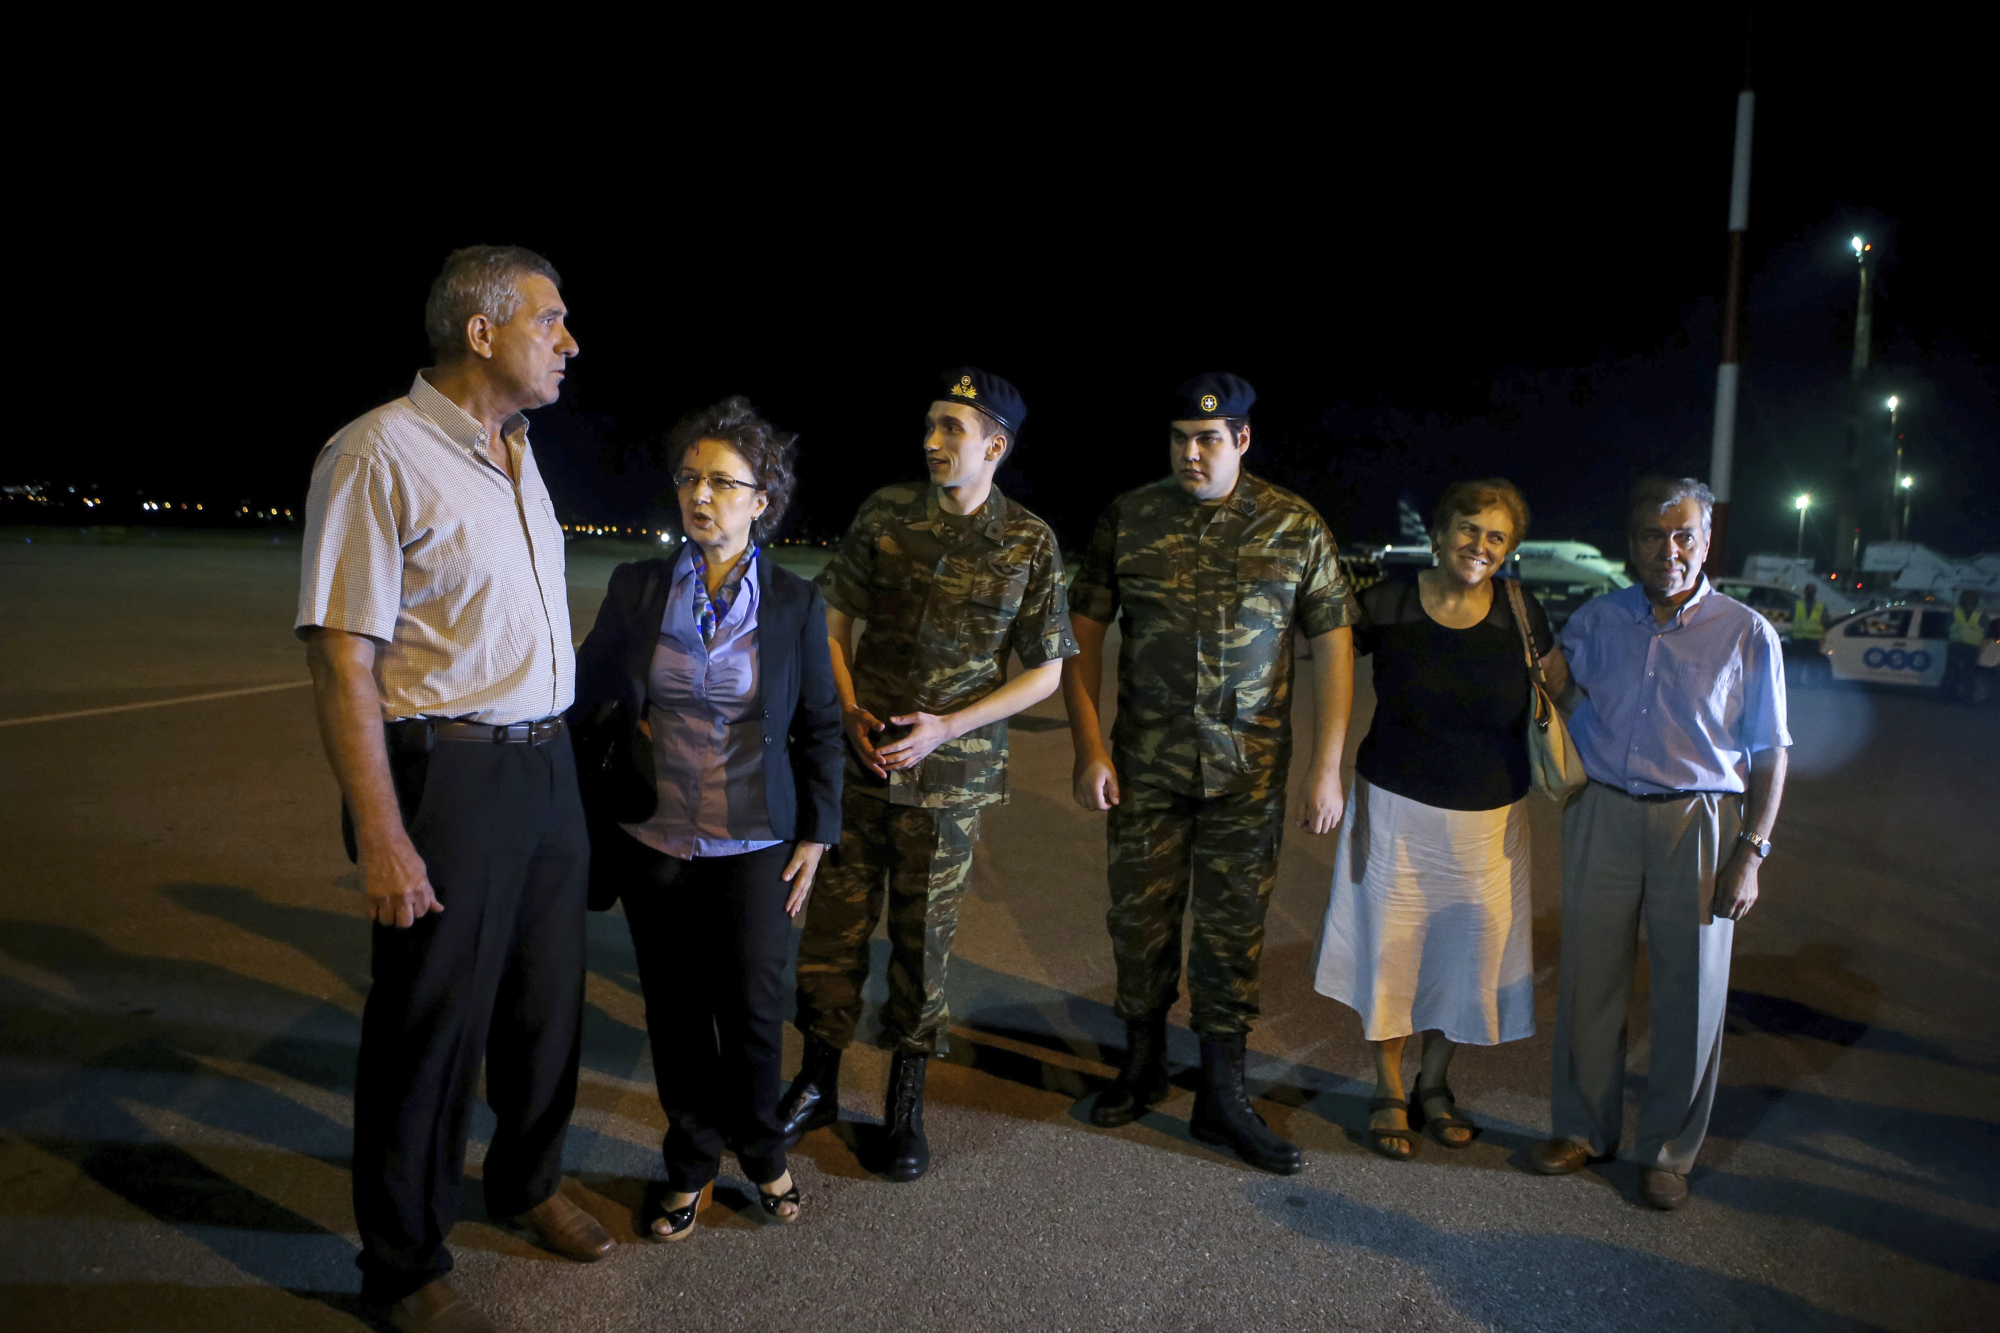 Greek soldiers Aggelos Mitretodis (third left) and Dimitros Kouklatzis (third right) are welcomed by their parents after their arrival early Wednesday at an airport in the northern city of Thessaloniki, after spending months in a Turkish prison. | AP